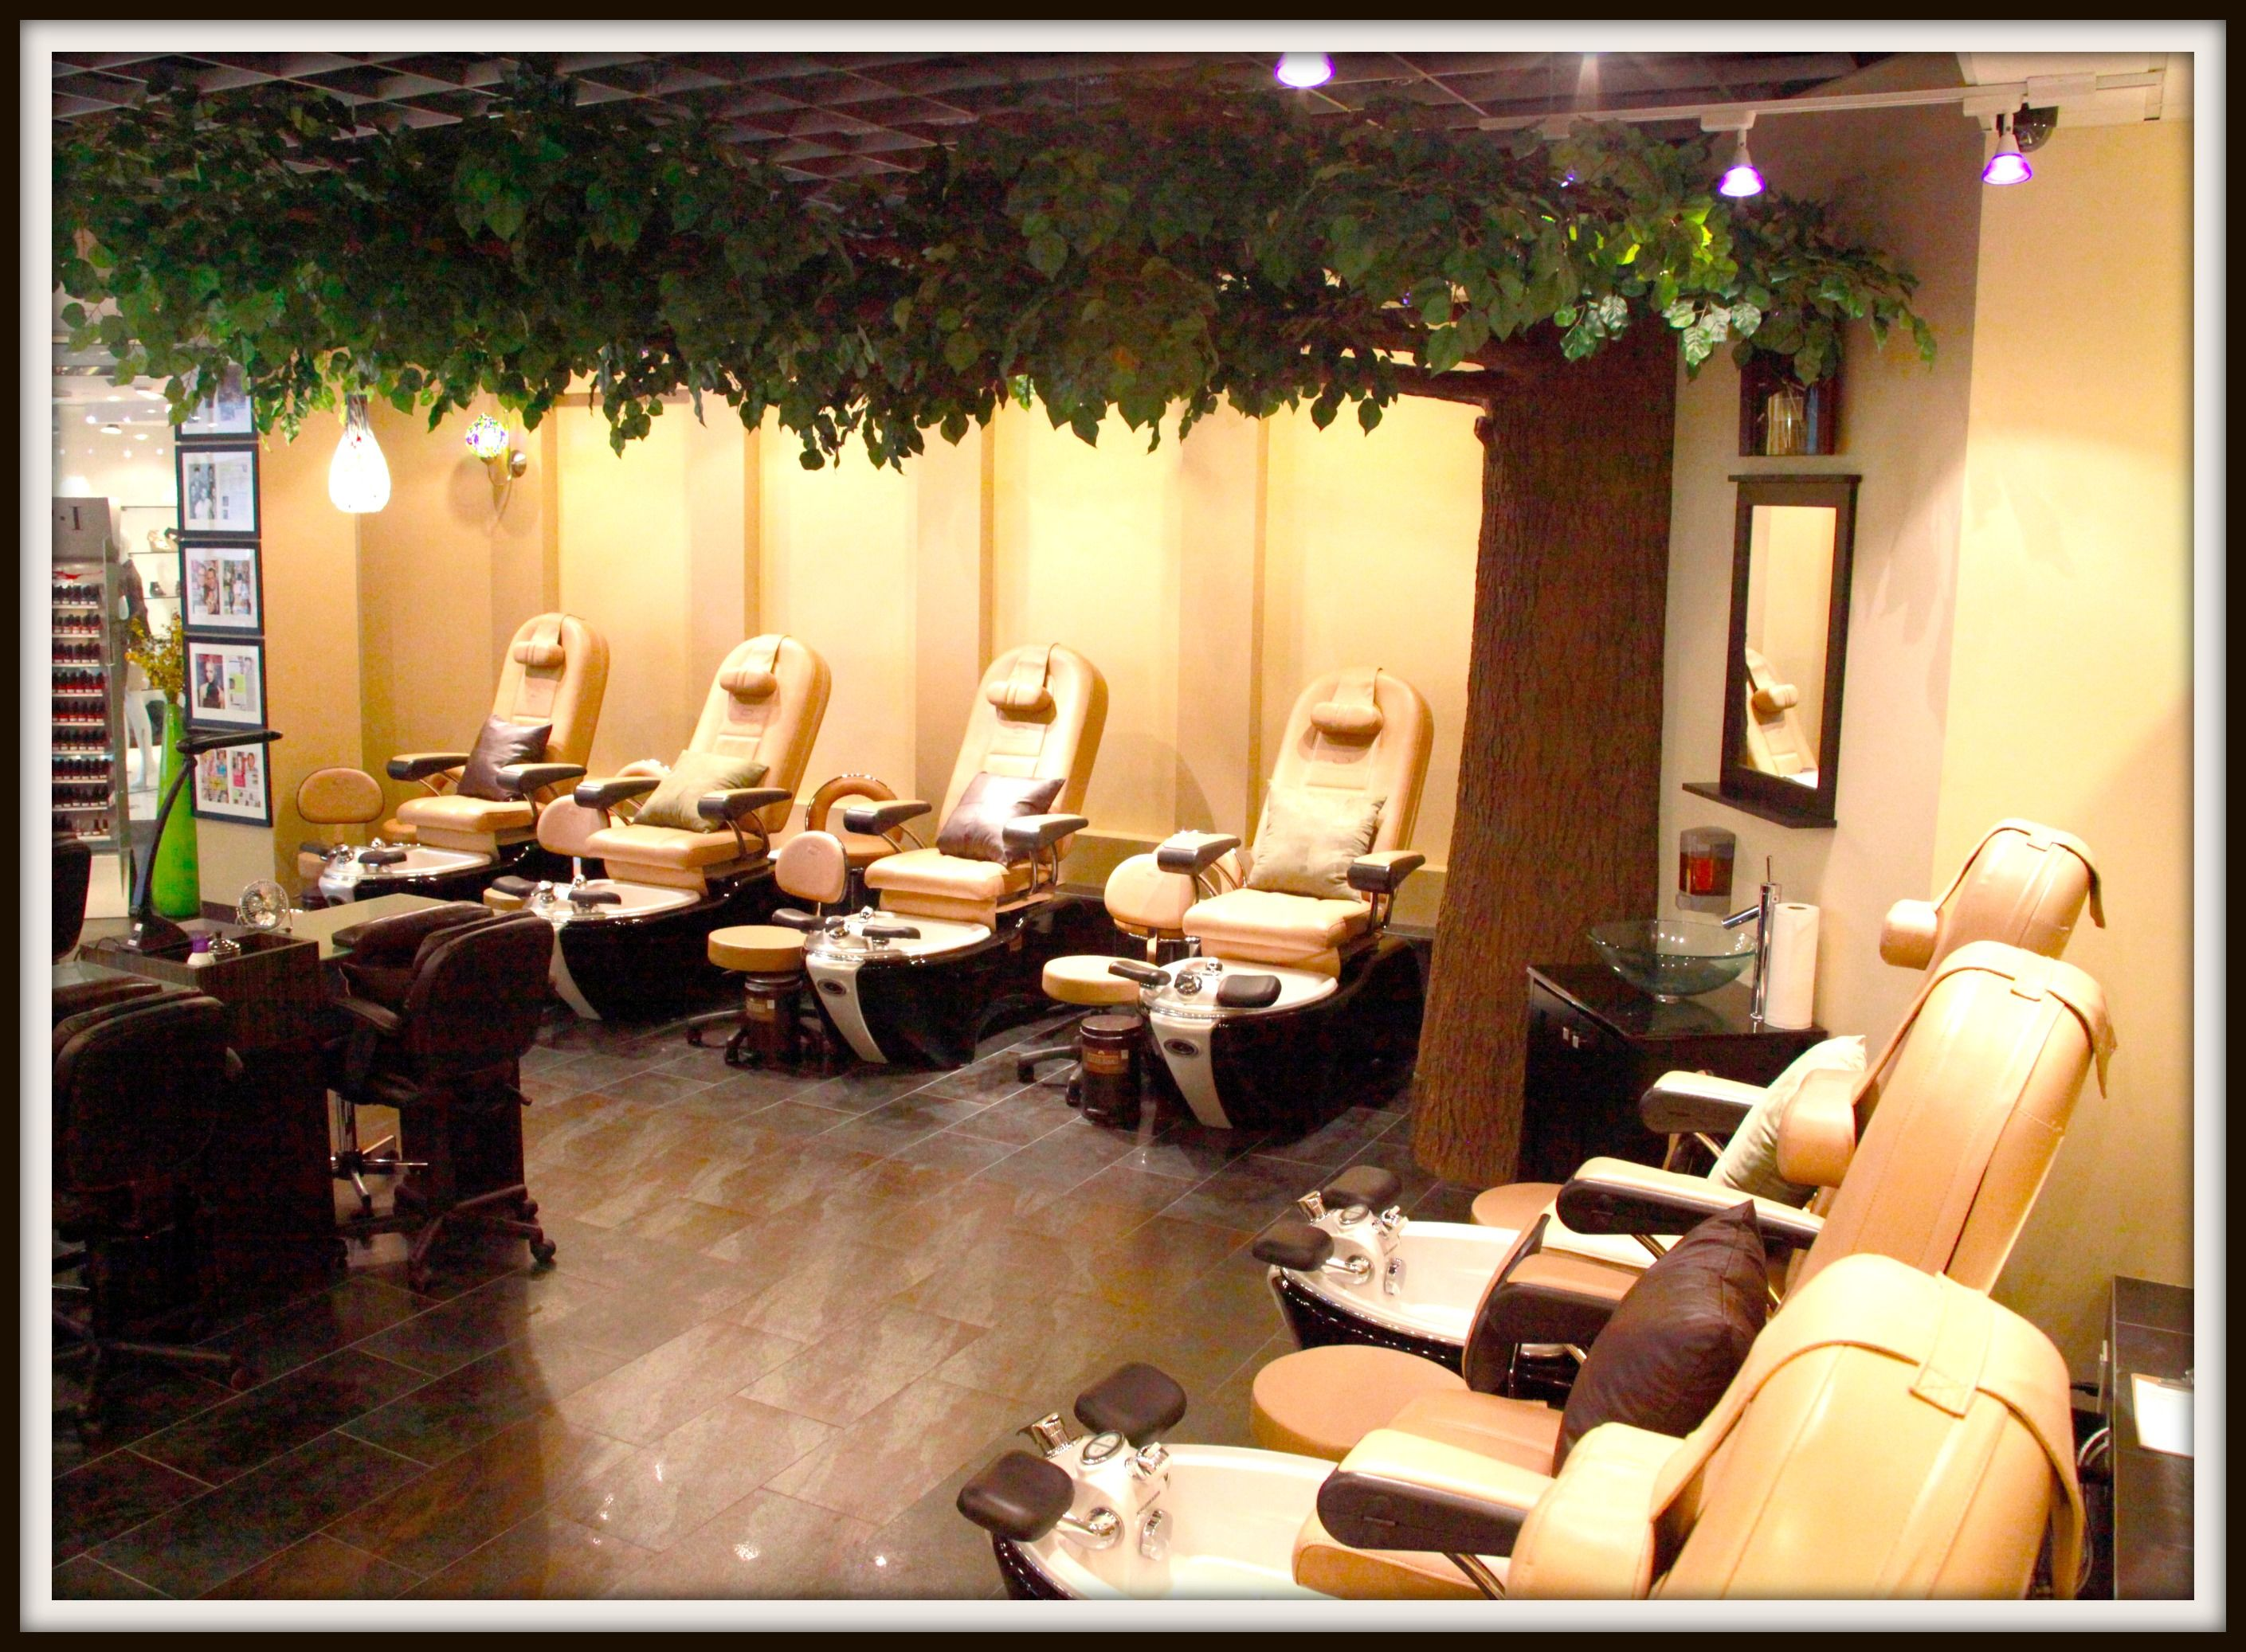 download contemporary nail salon ideas on original size above 525